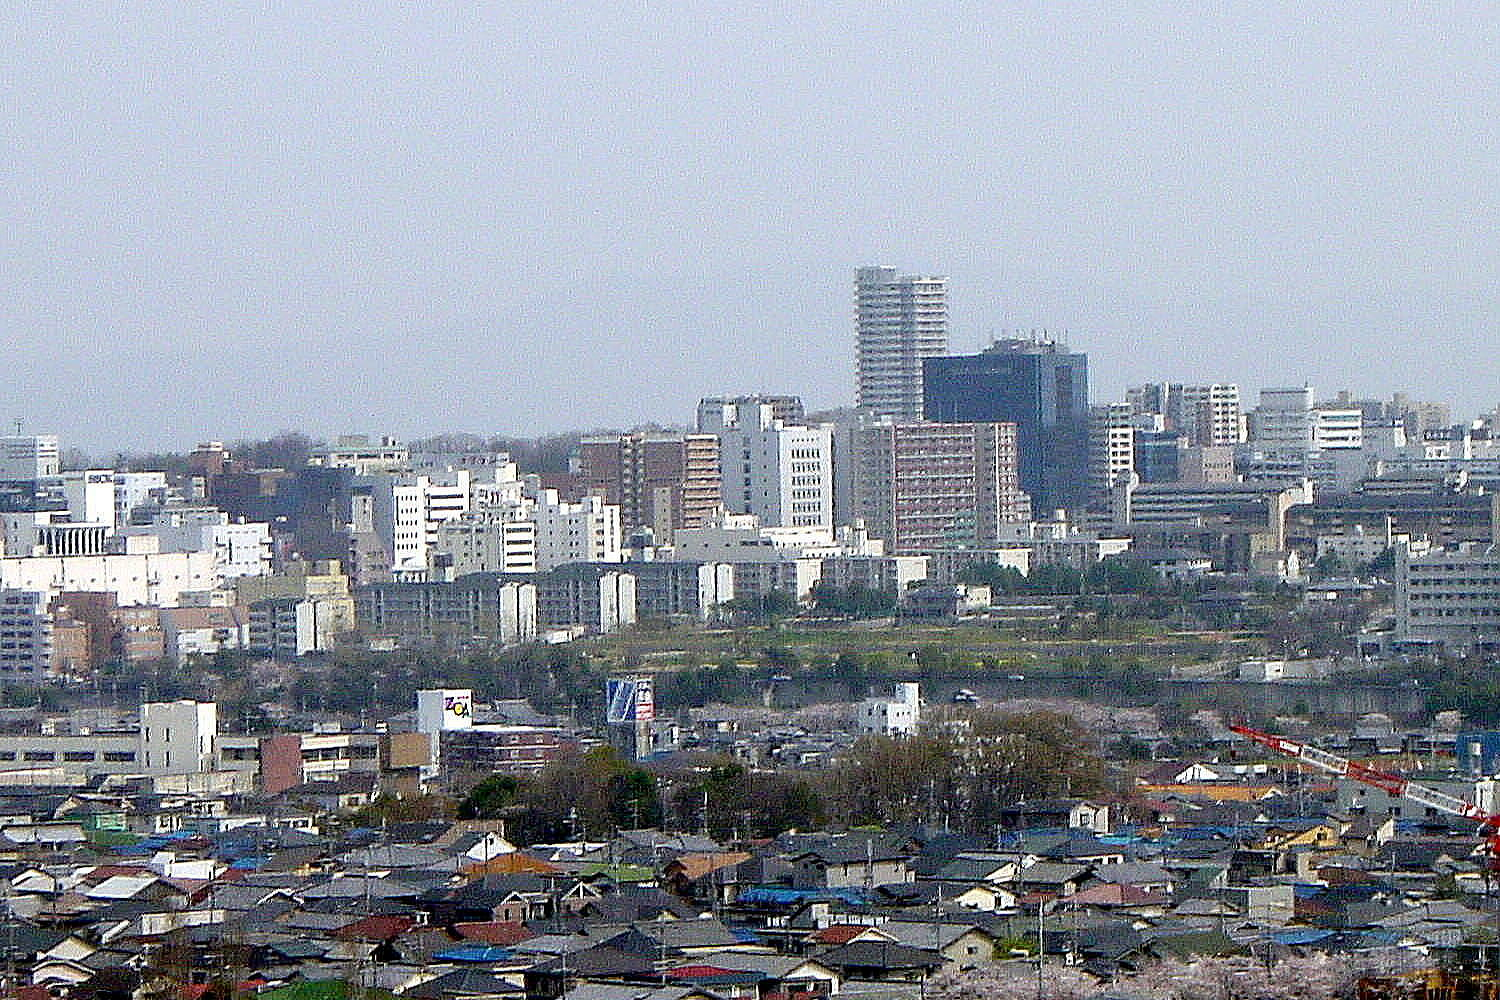 Osaka.Toyonaka City